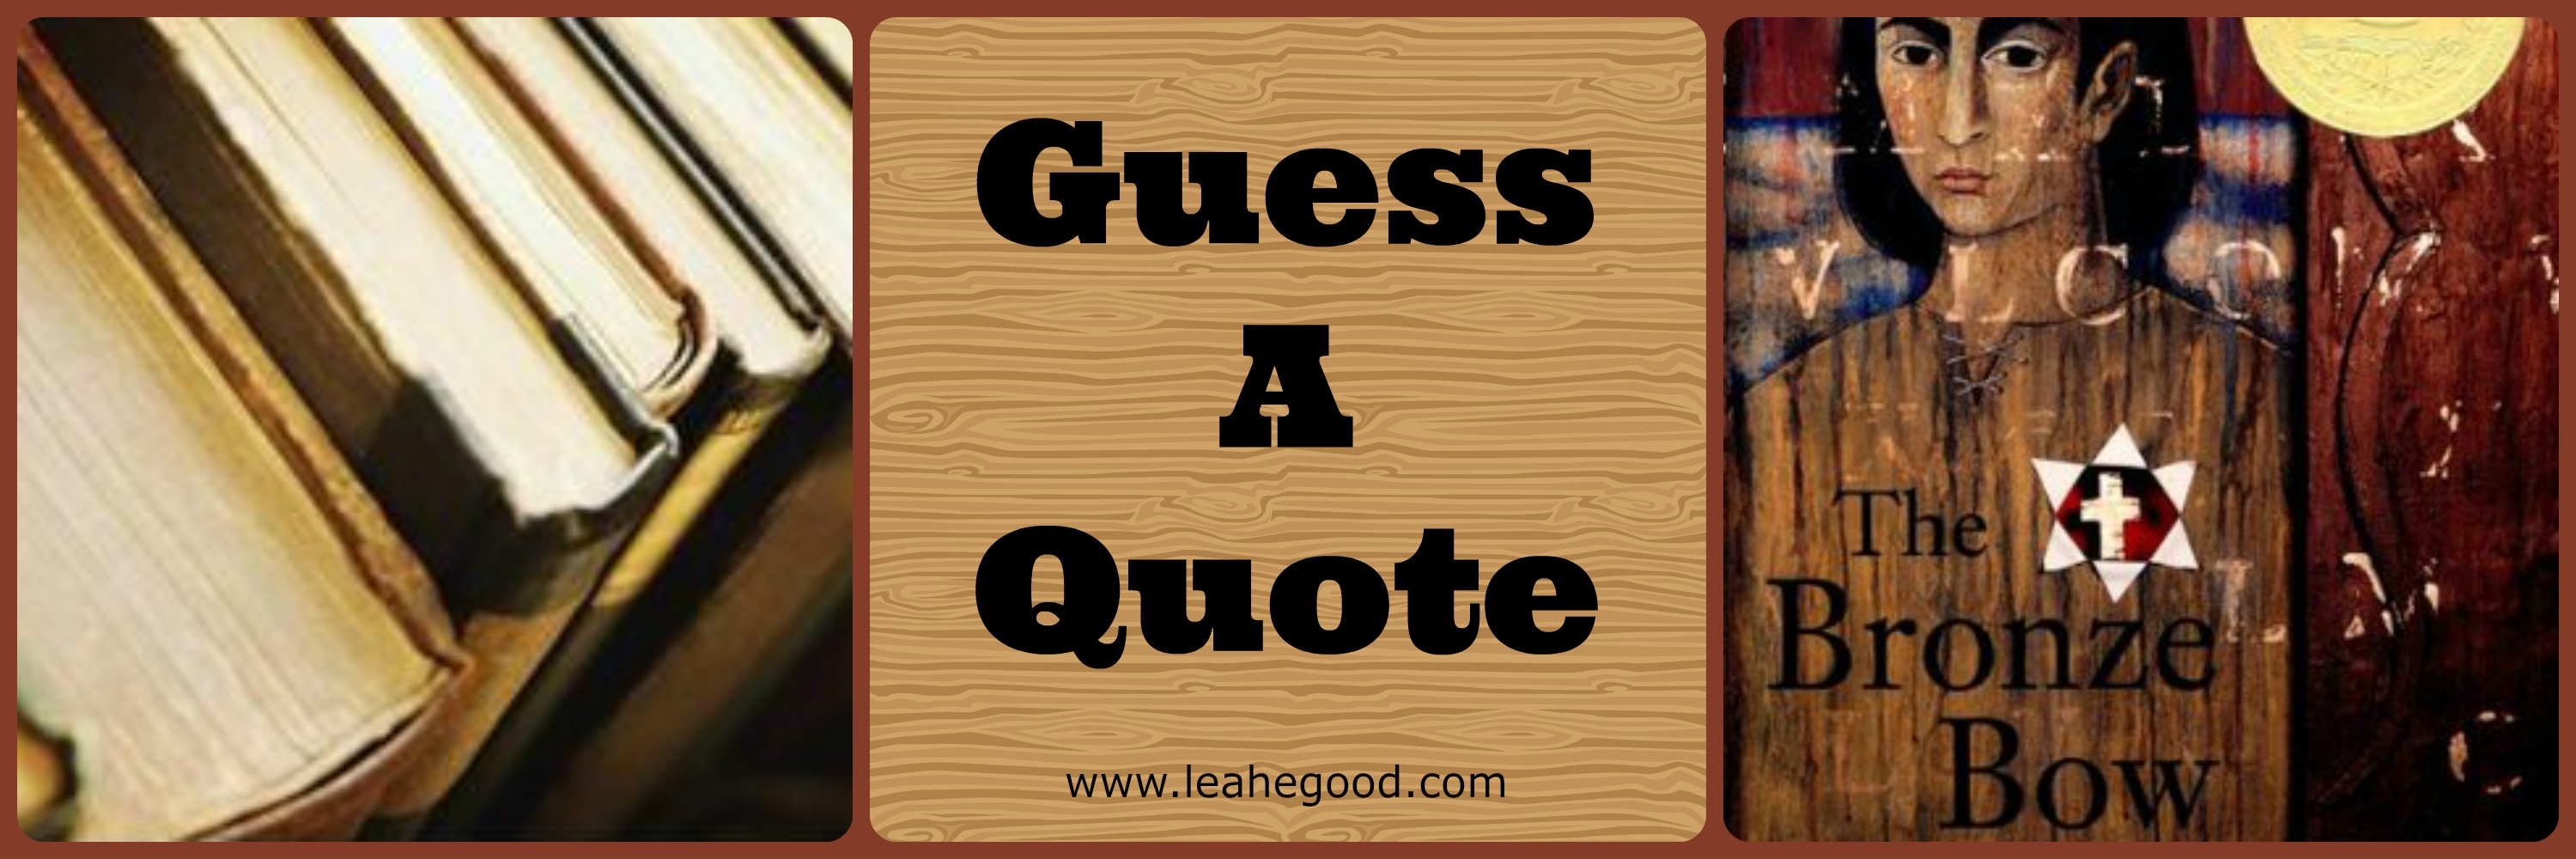 Guess a Quote (1.27.15) & Giveaway   Leah's Bookshelf